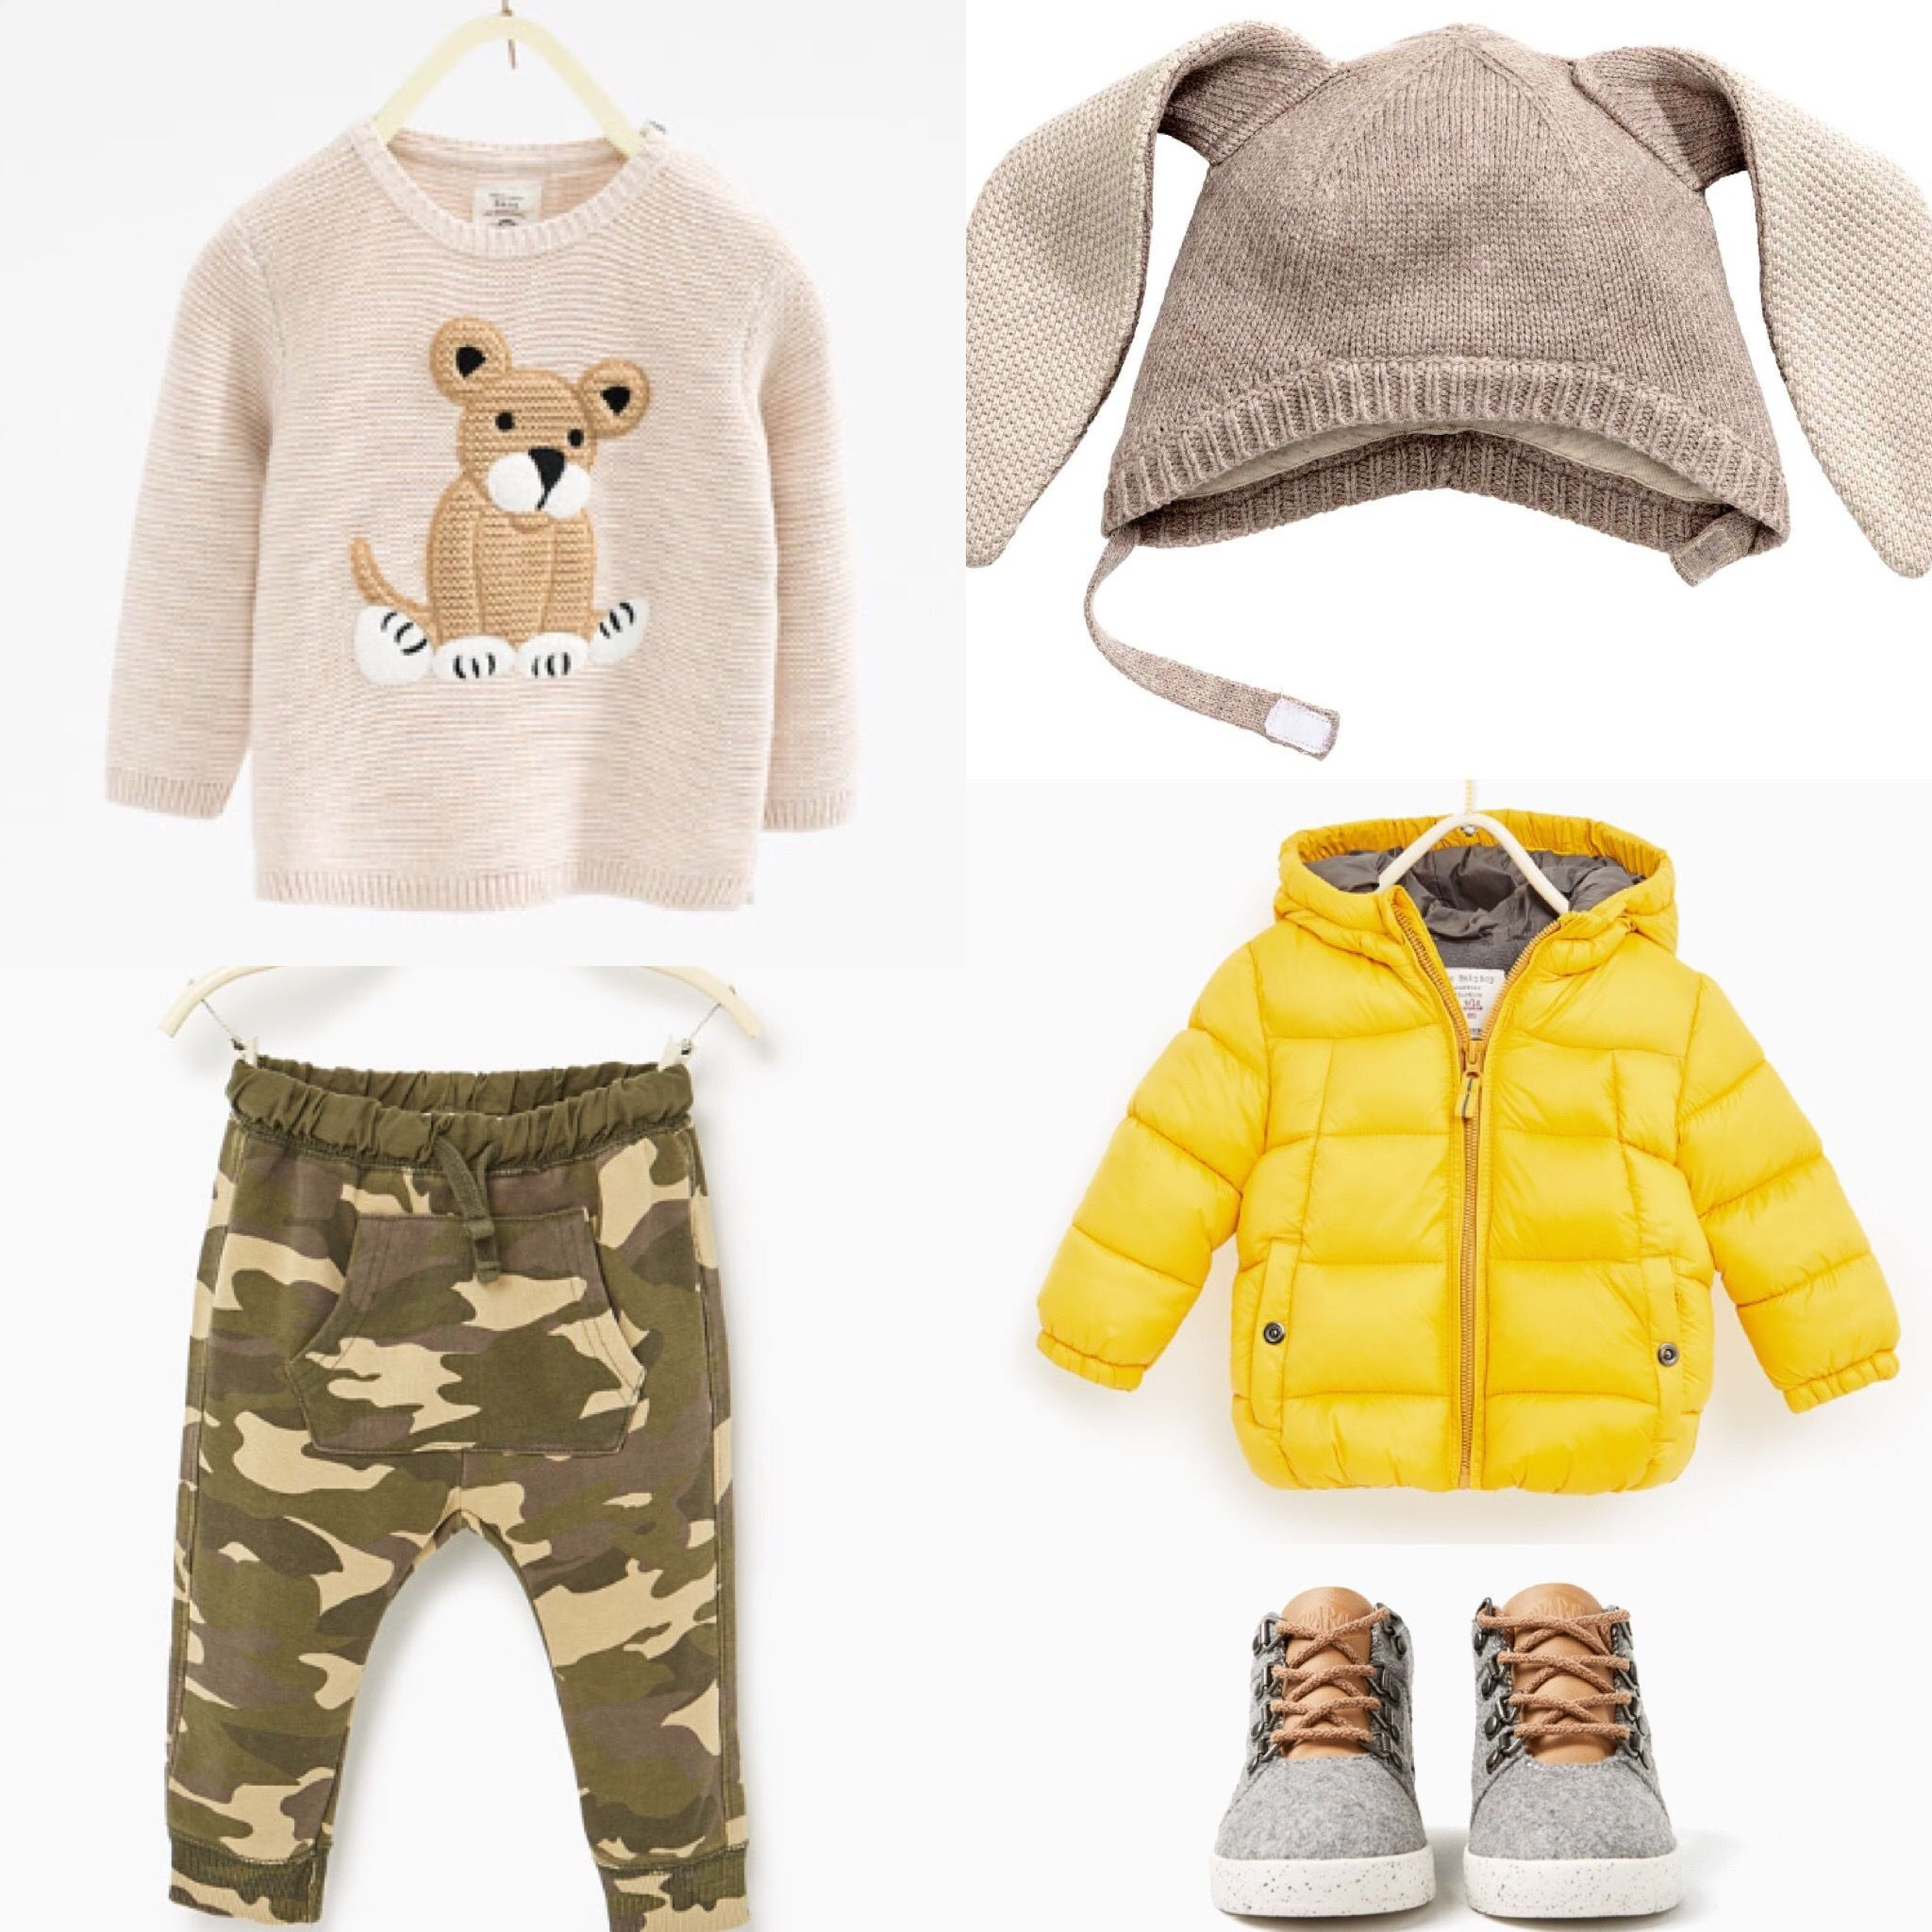 c03d81467 Baby boy fall outfit. H M hat